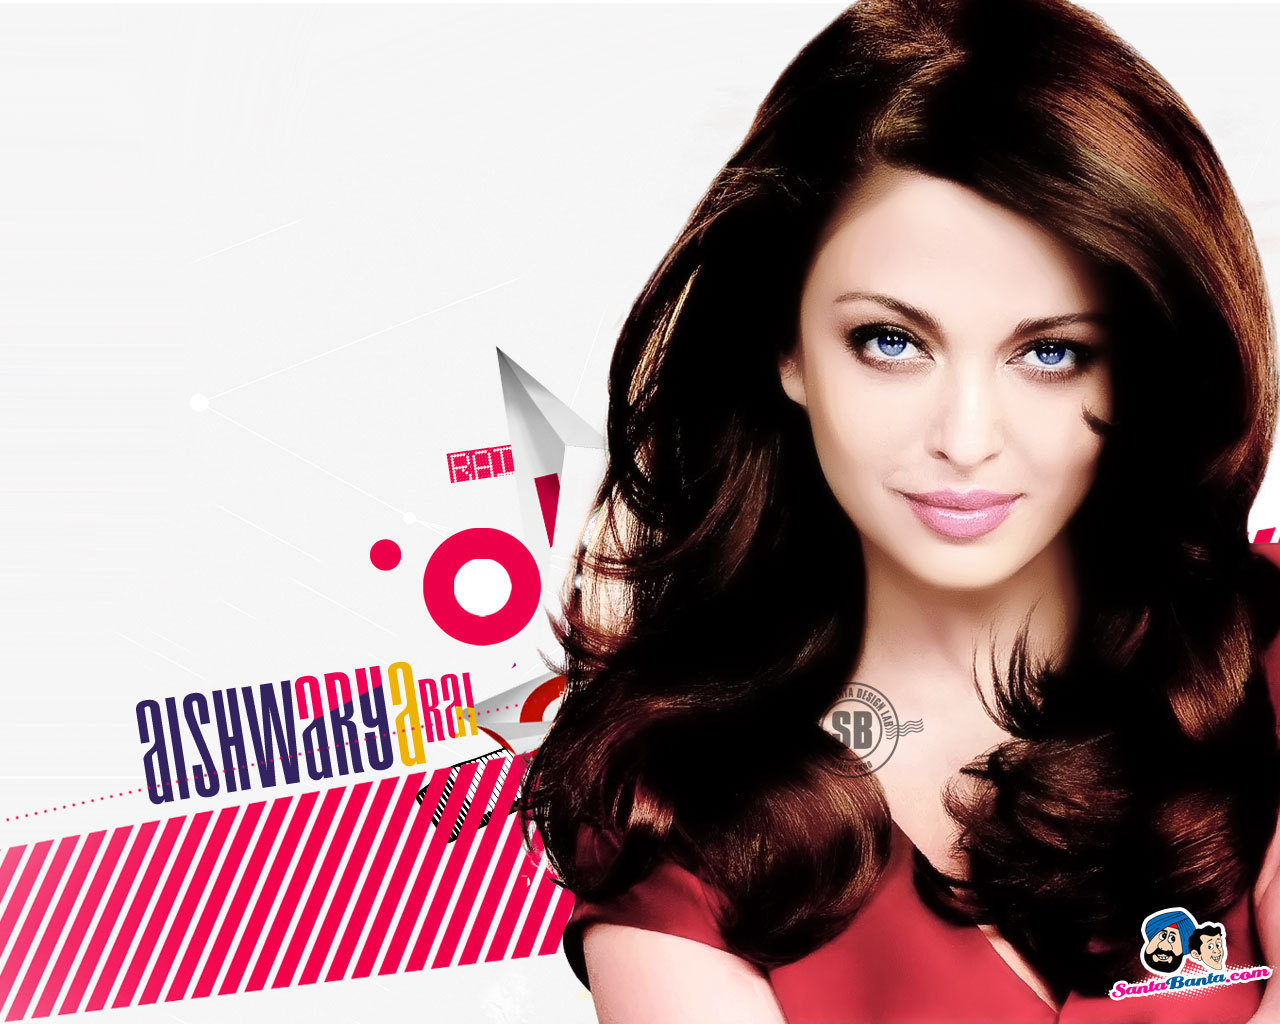 aishwarya rai hot wallpapers downloads